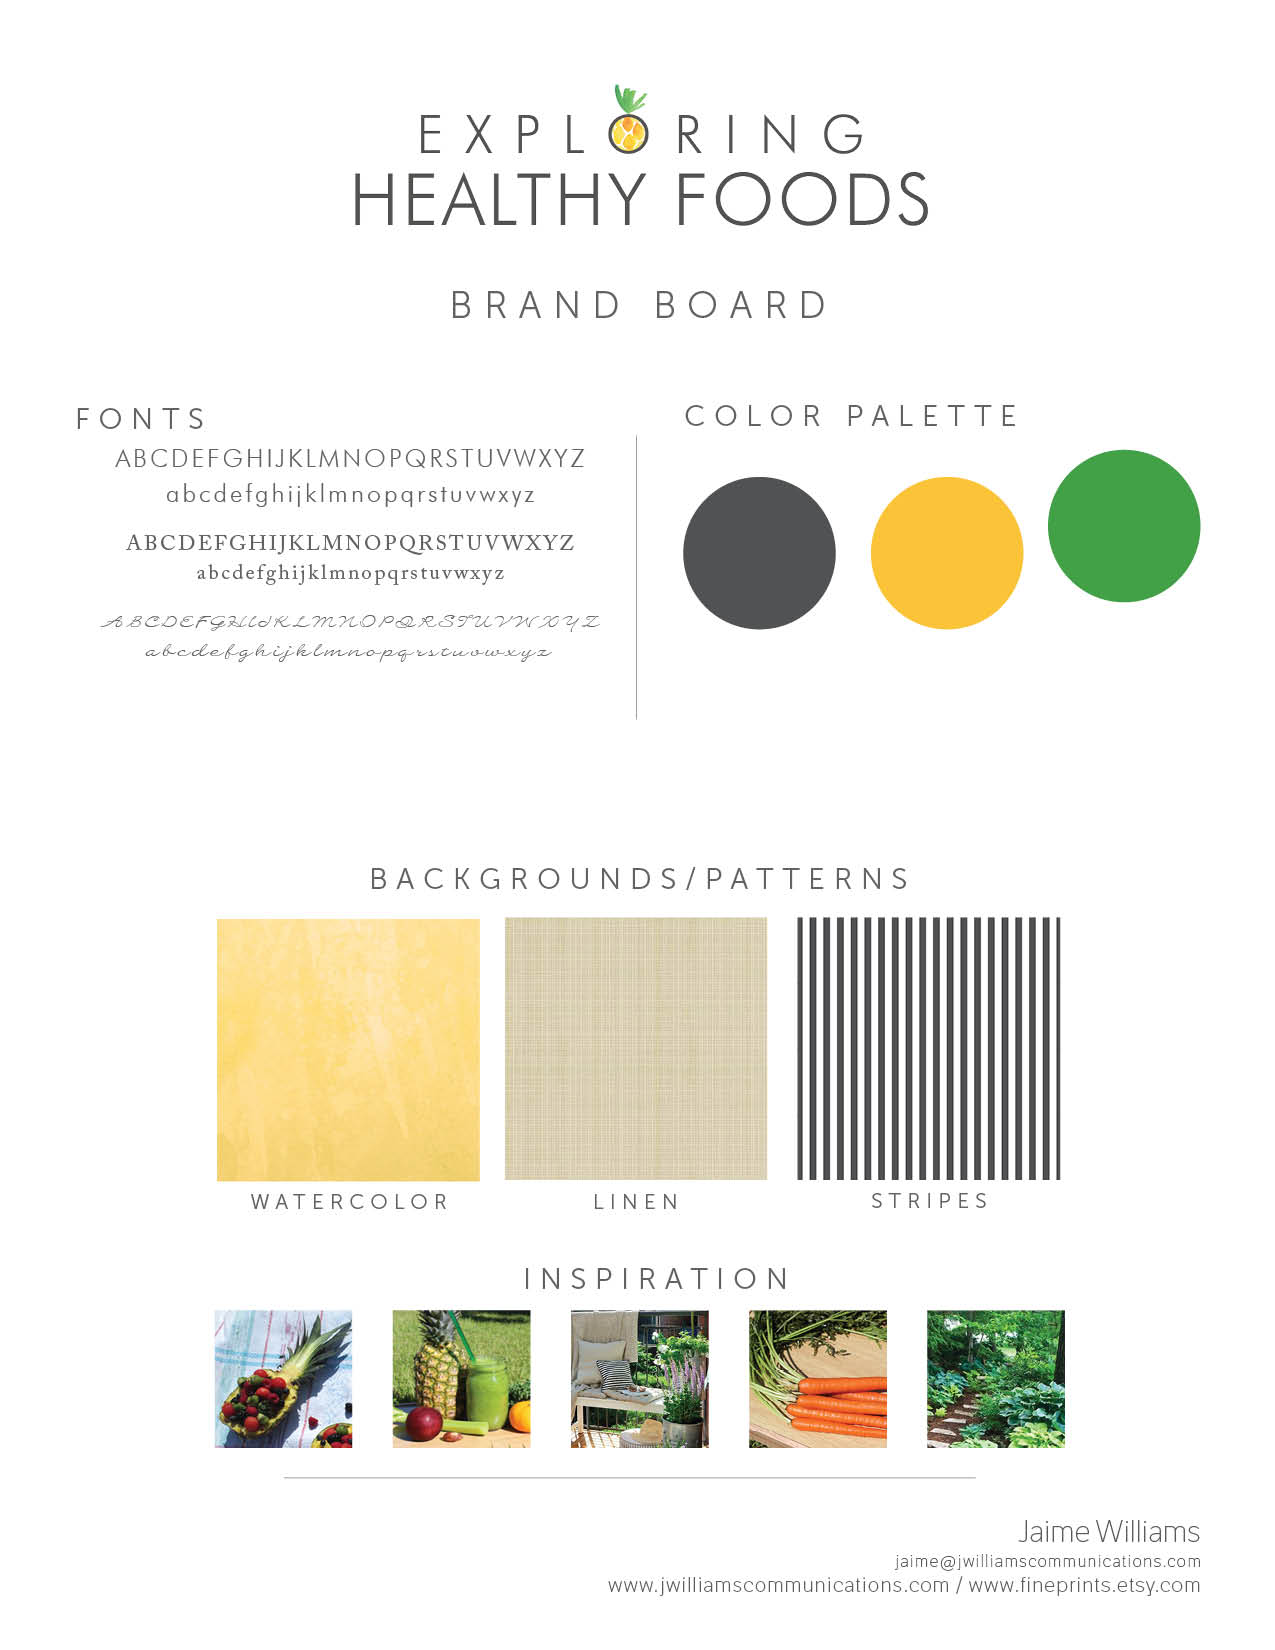 exploring healthy foods blog and book brand board and logo design